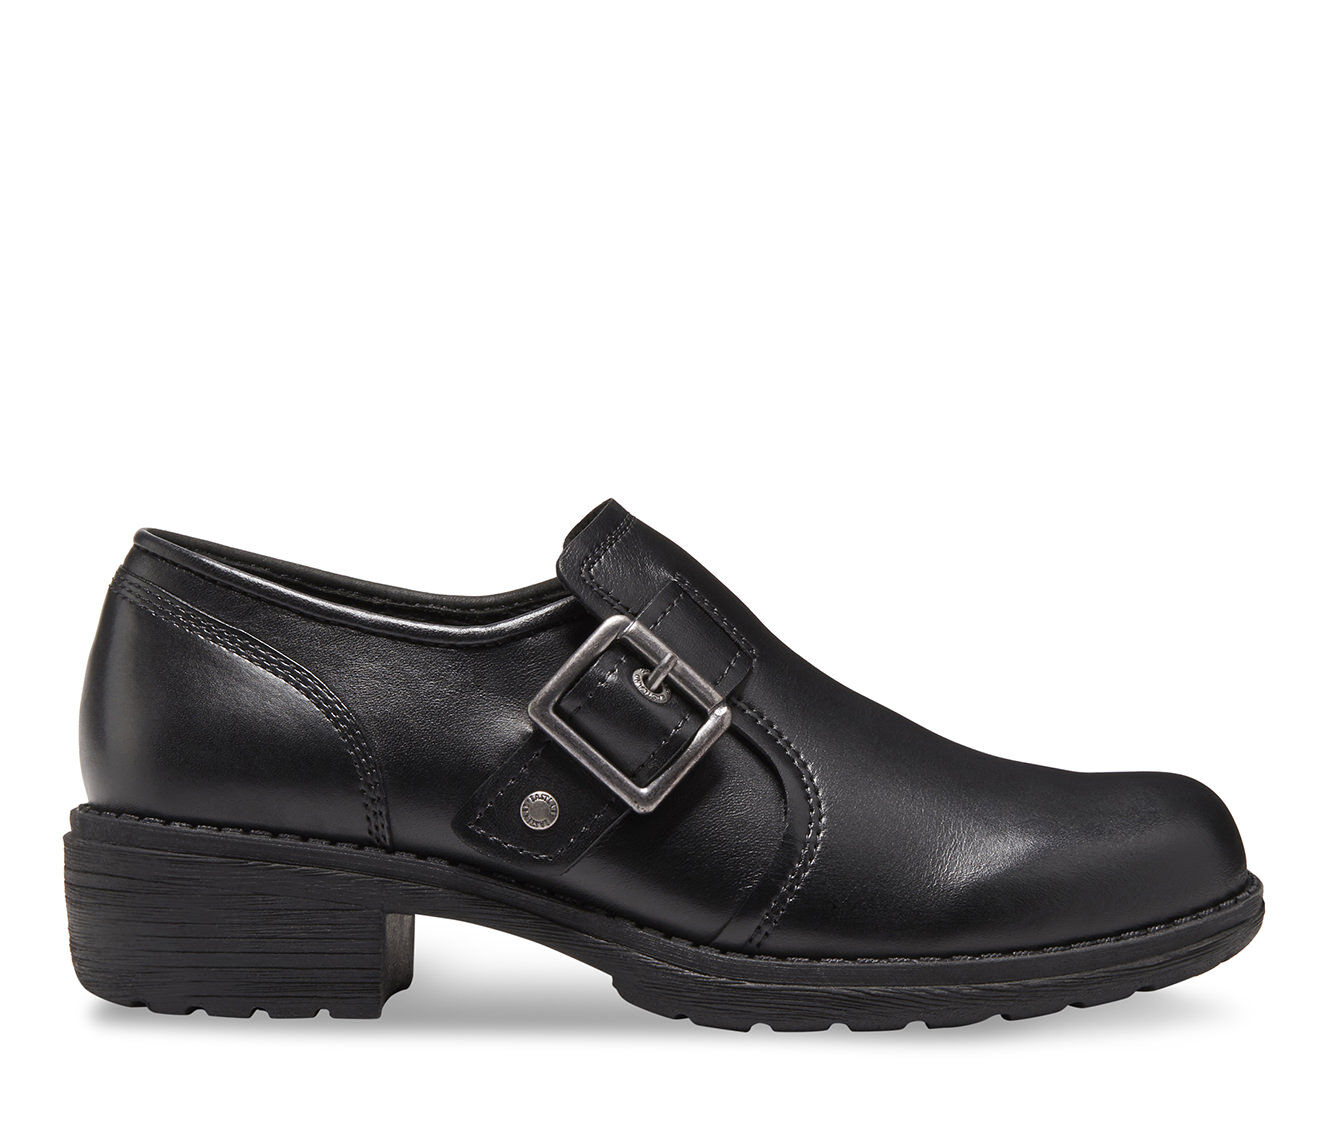 Women's Eastland Open Road Clogs Black